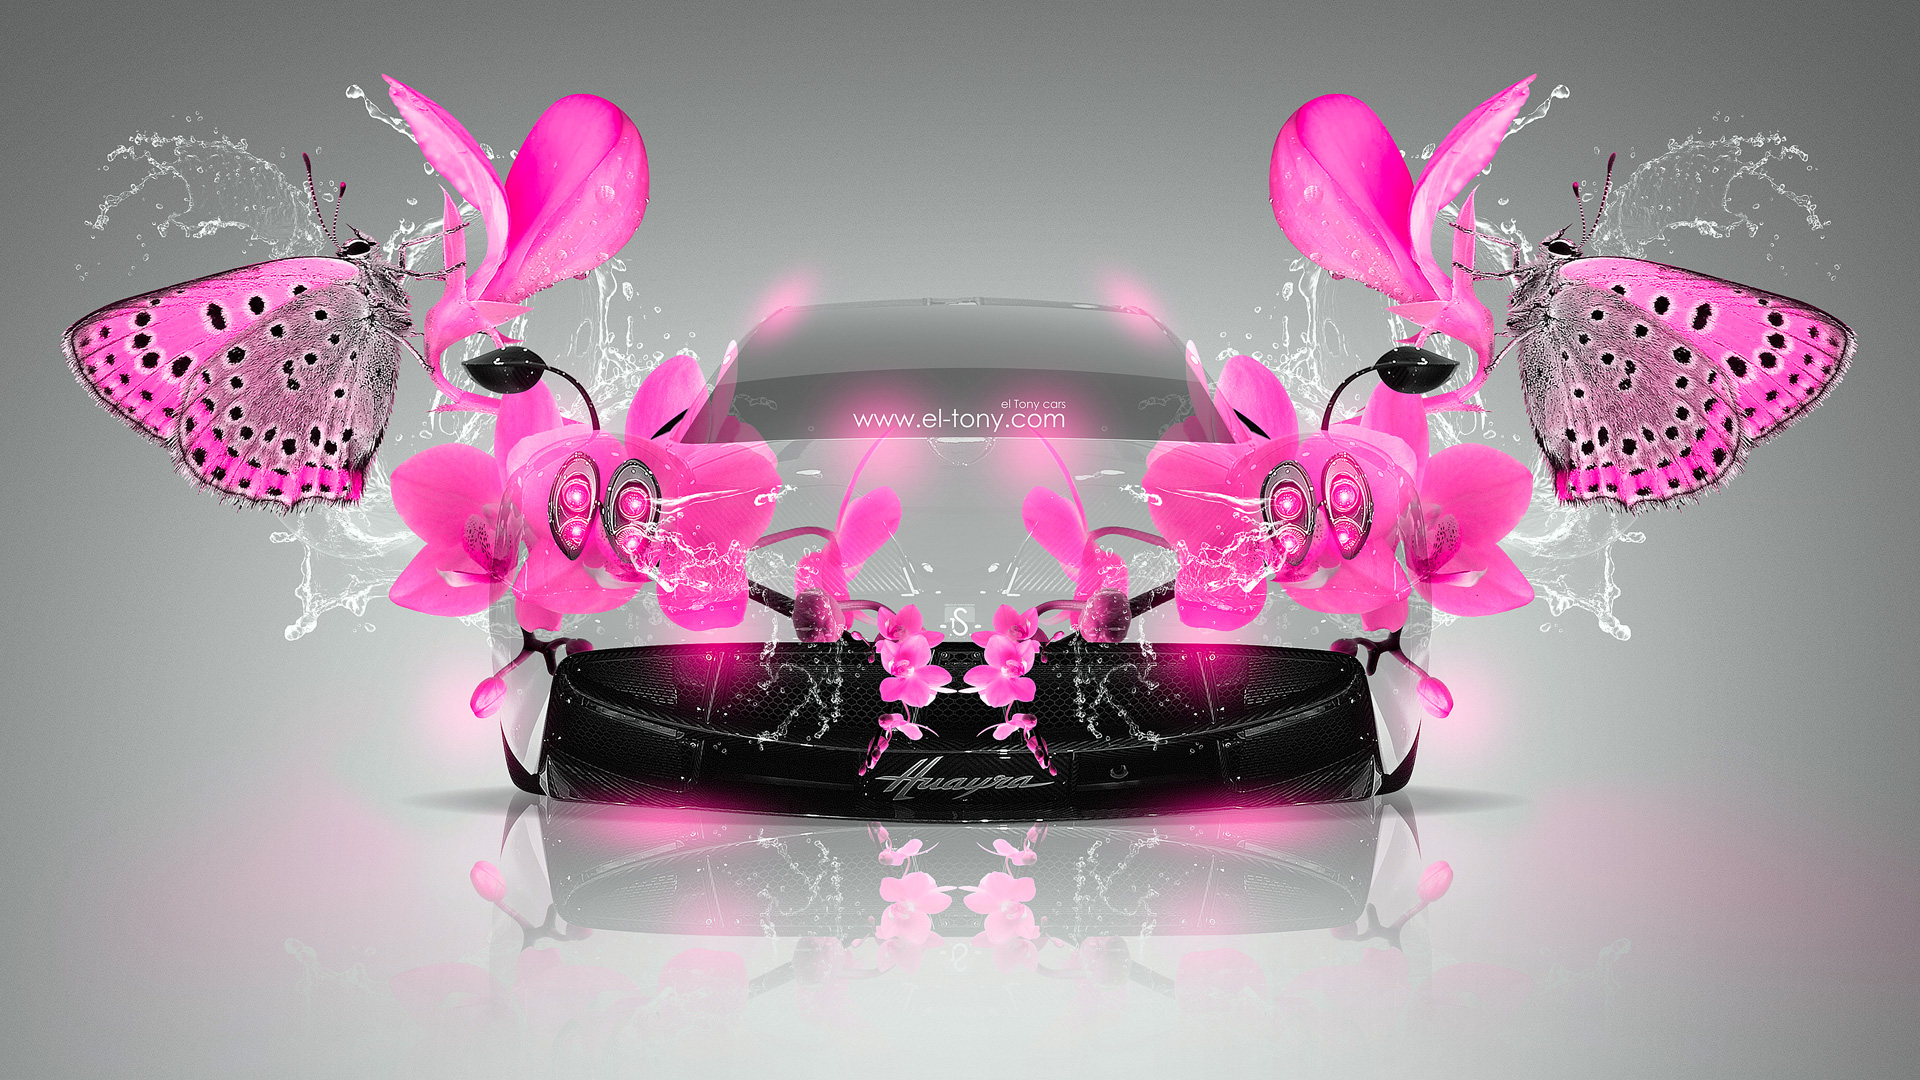 Pagani-Huayra-Fantasy-Pink-Neon-Butterfly-Flowers-Car-2014-design-by-Tony-Kokhan-[www.el-tony.com]